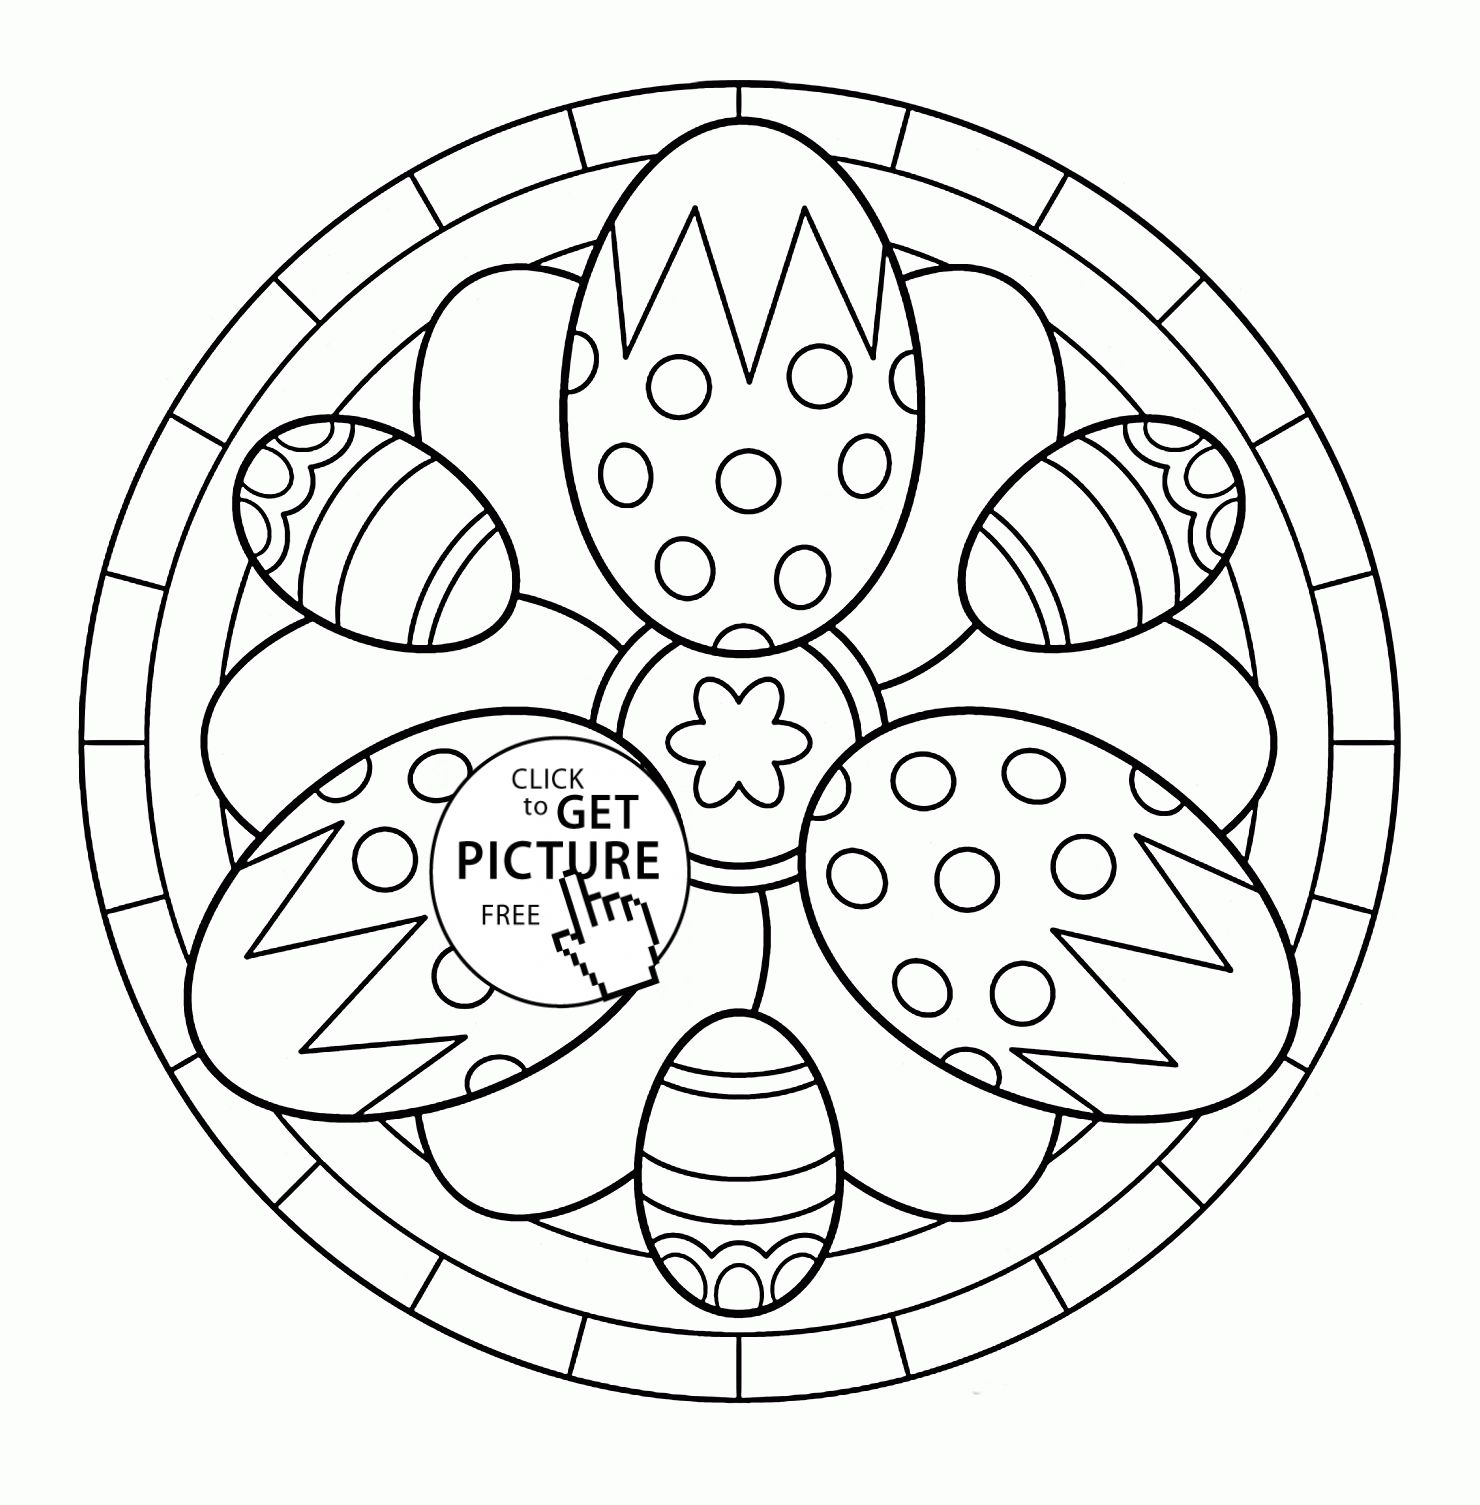 Easter Egg Colouring Pages 56